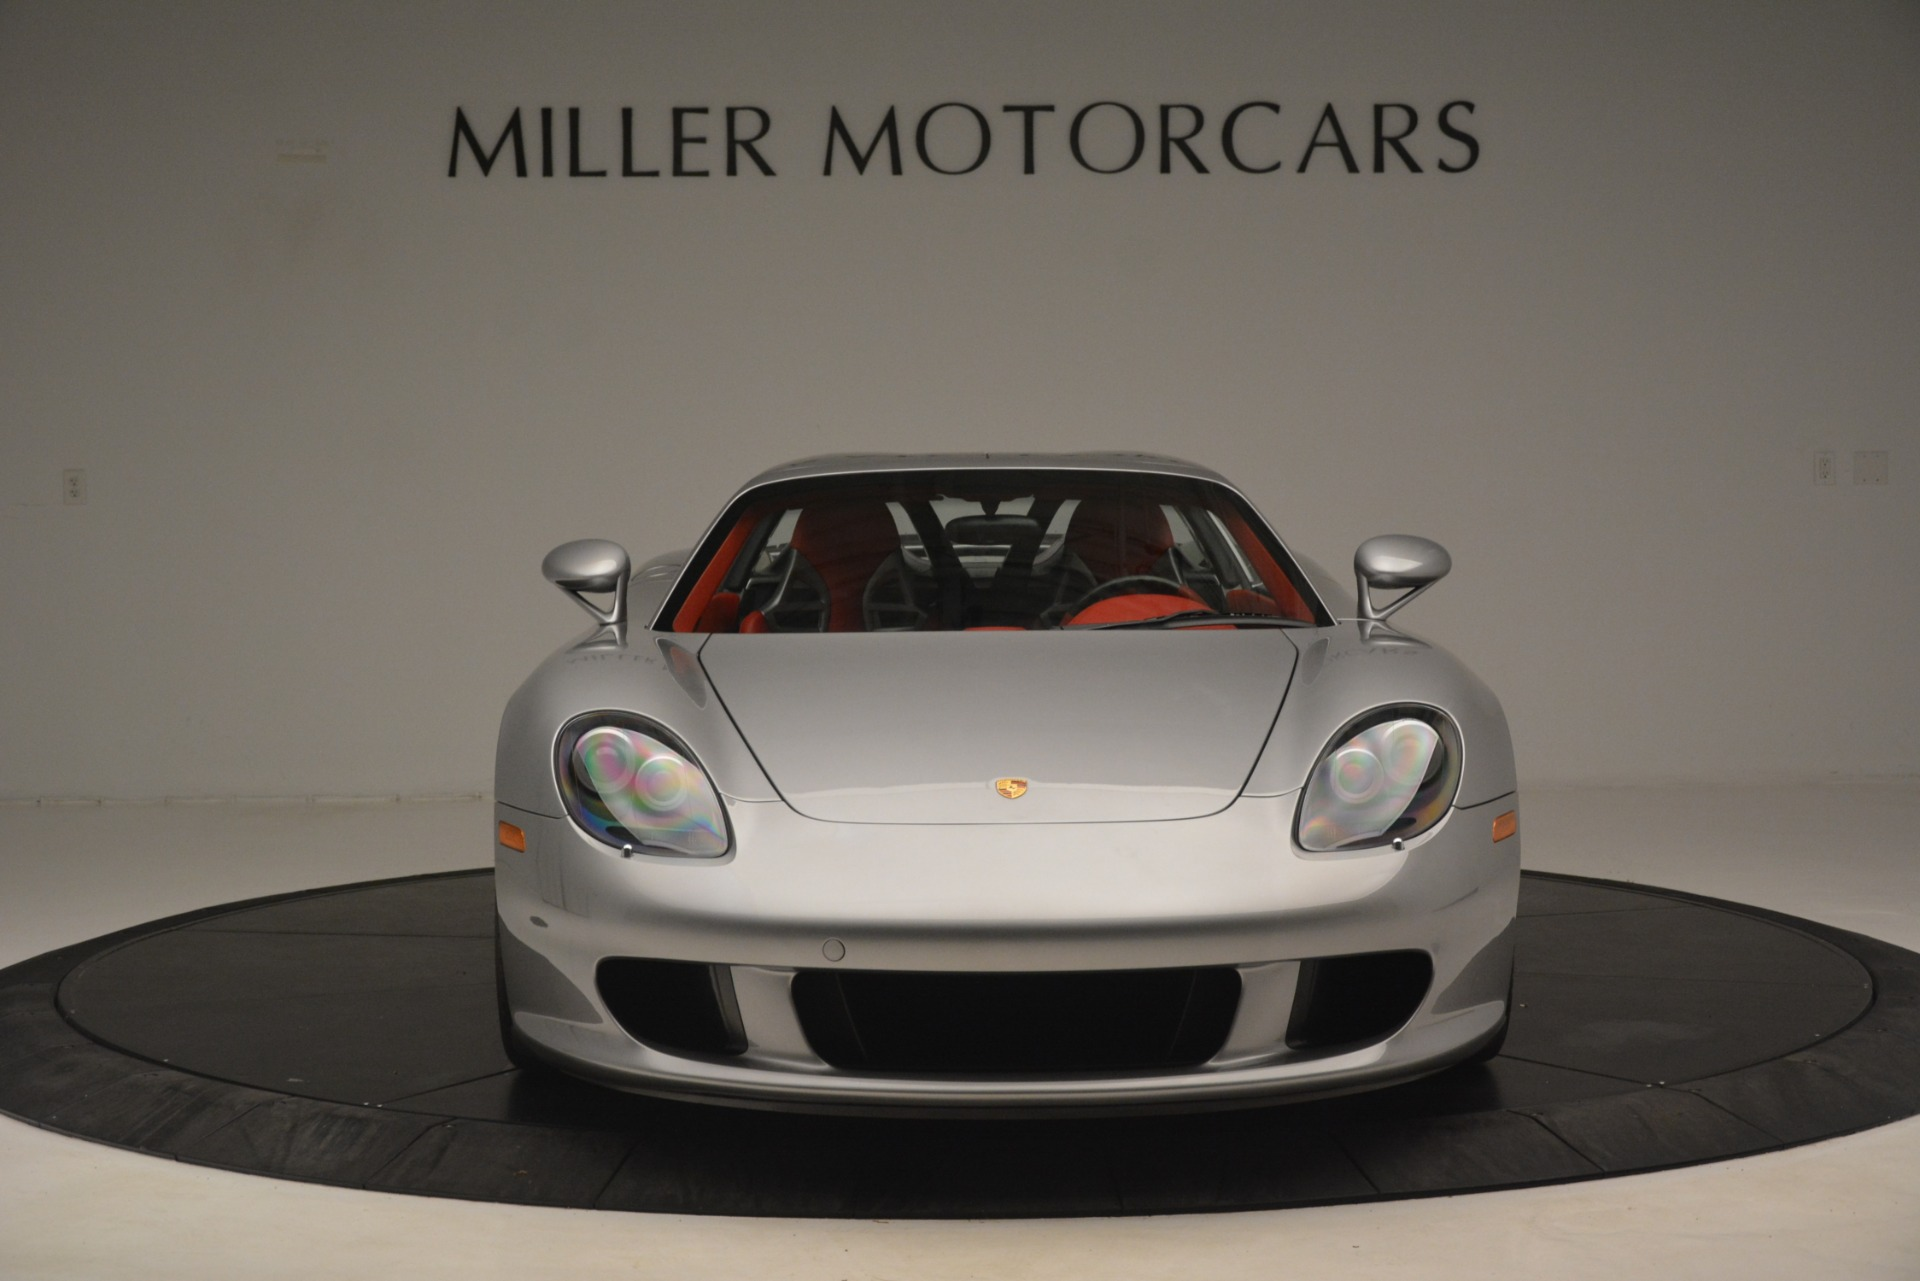 Used 2005 Porsche Carrera GT  For Sale In Westport, CT 3161_p14